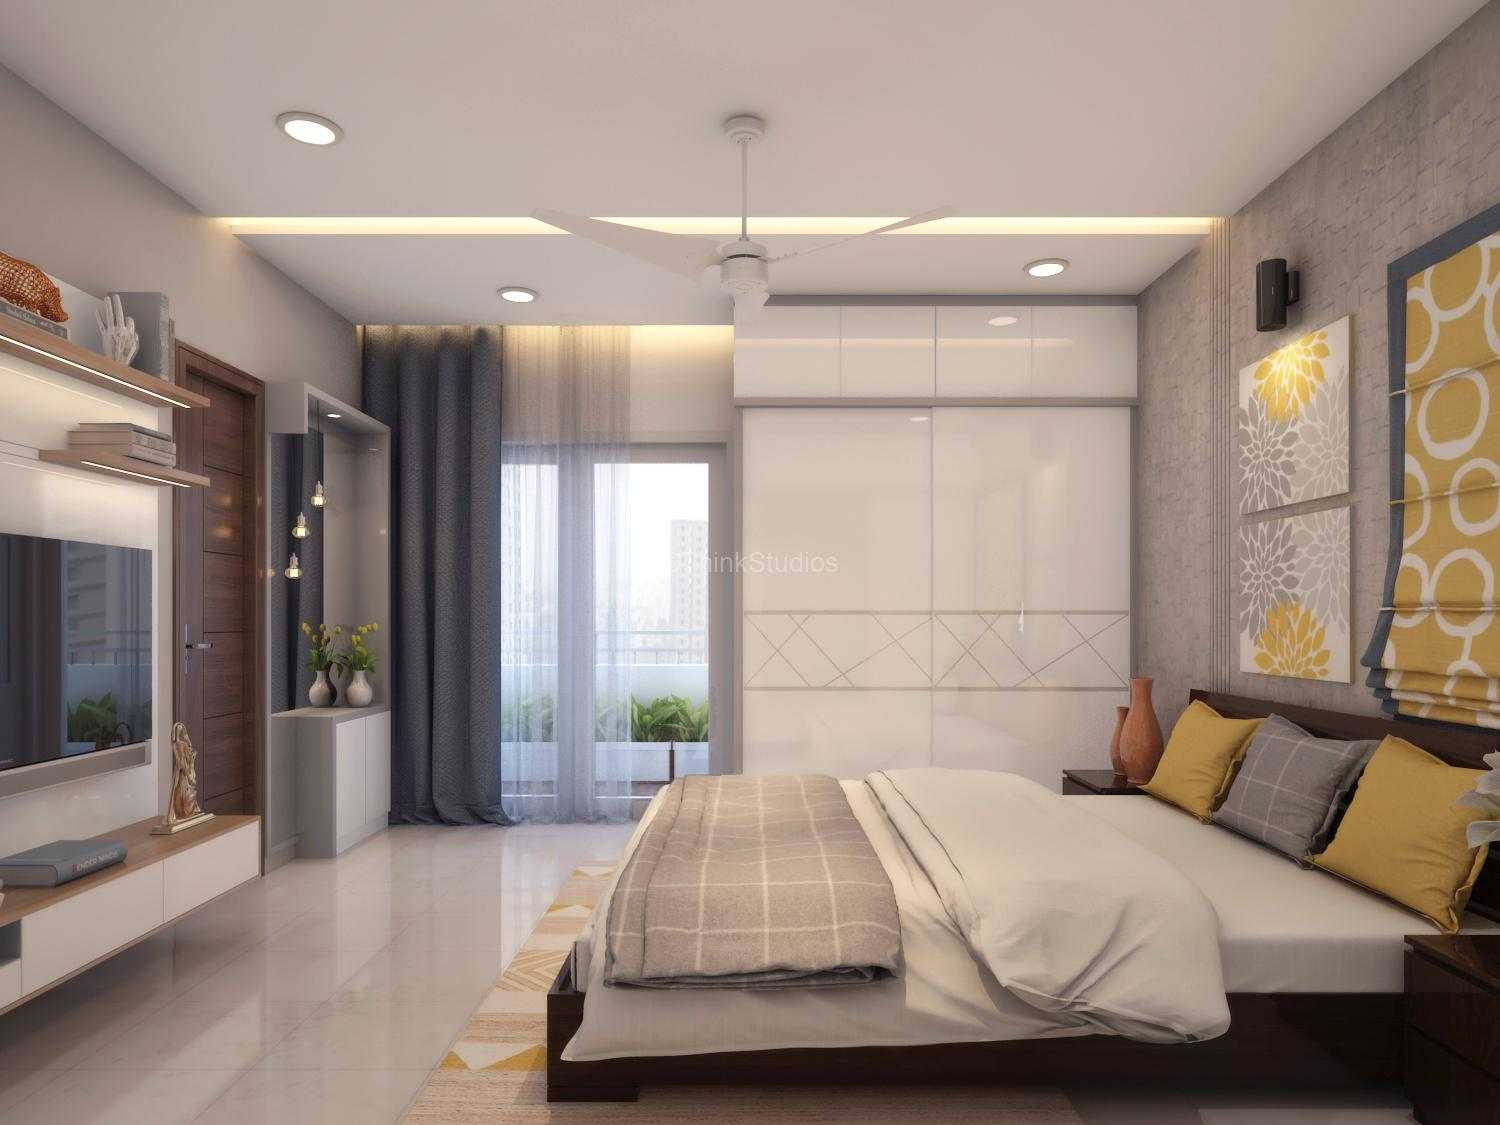 Renovation of Residential Bungalow Interiors_Bungalow in Bangalore _2